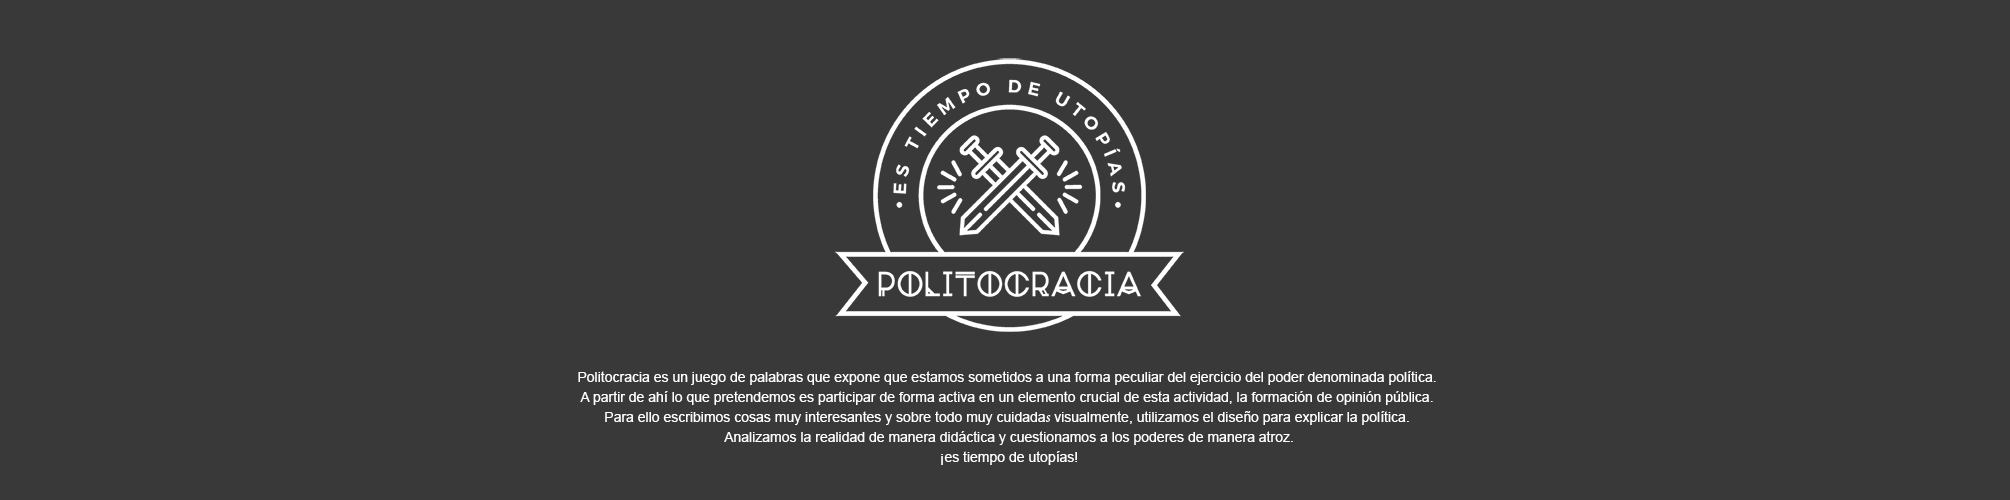 politocracia-quienes-index-agosto